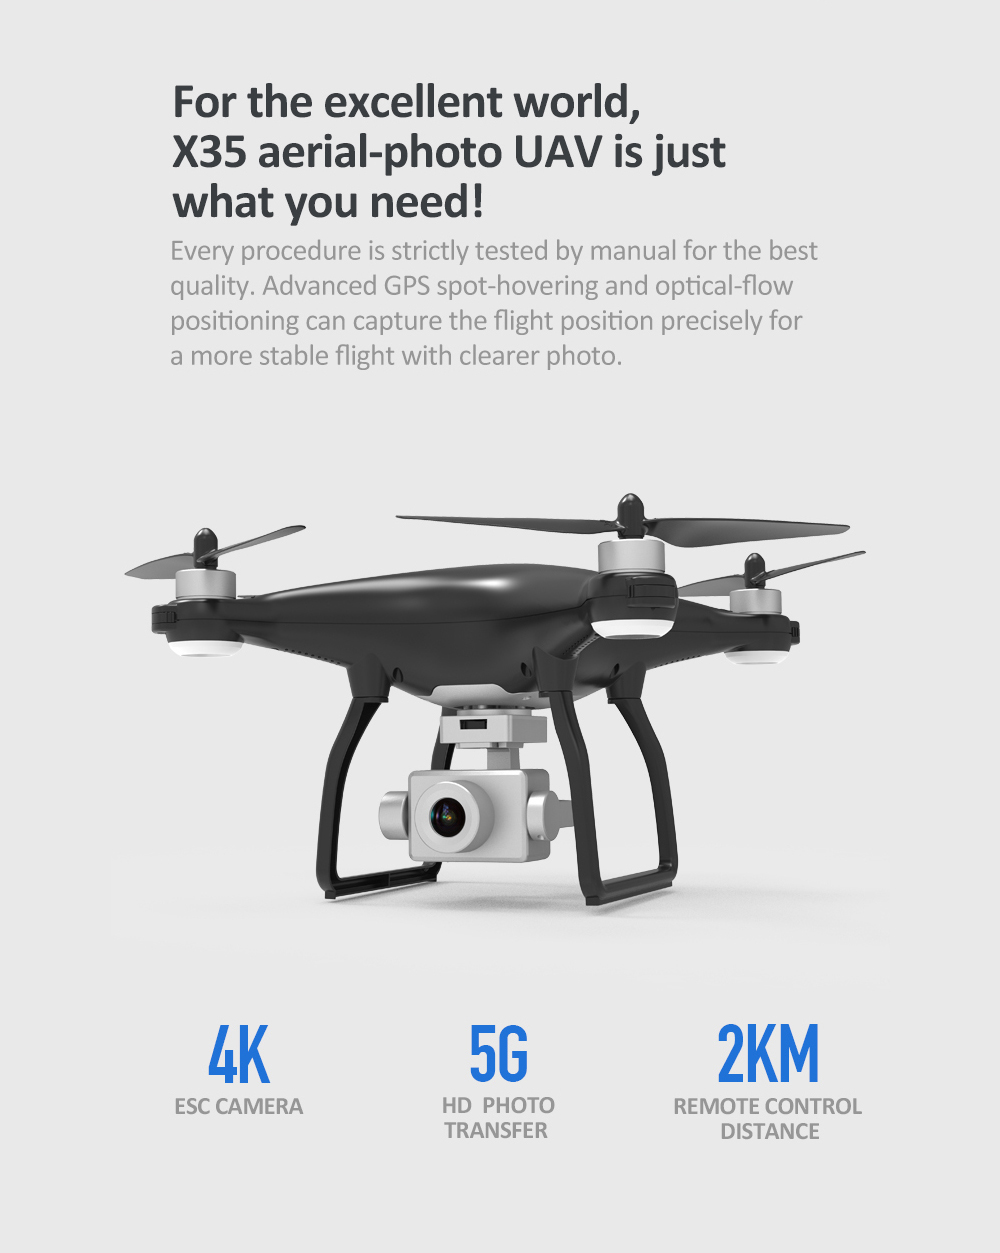 X35 1KM 5G Wifi GPS With 3-Axis Gimbal 4K HD Camera Brushless RC Quadcopter RTF - Black 1 Battery with Servo